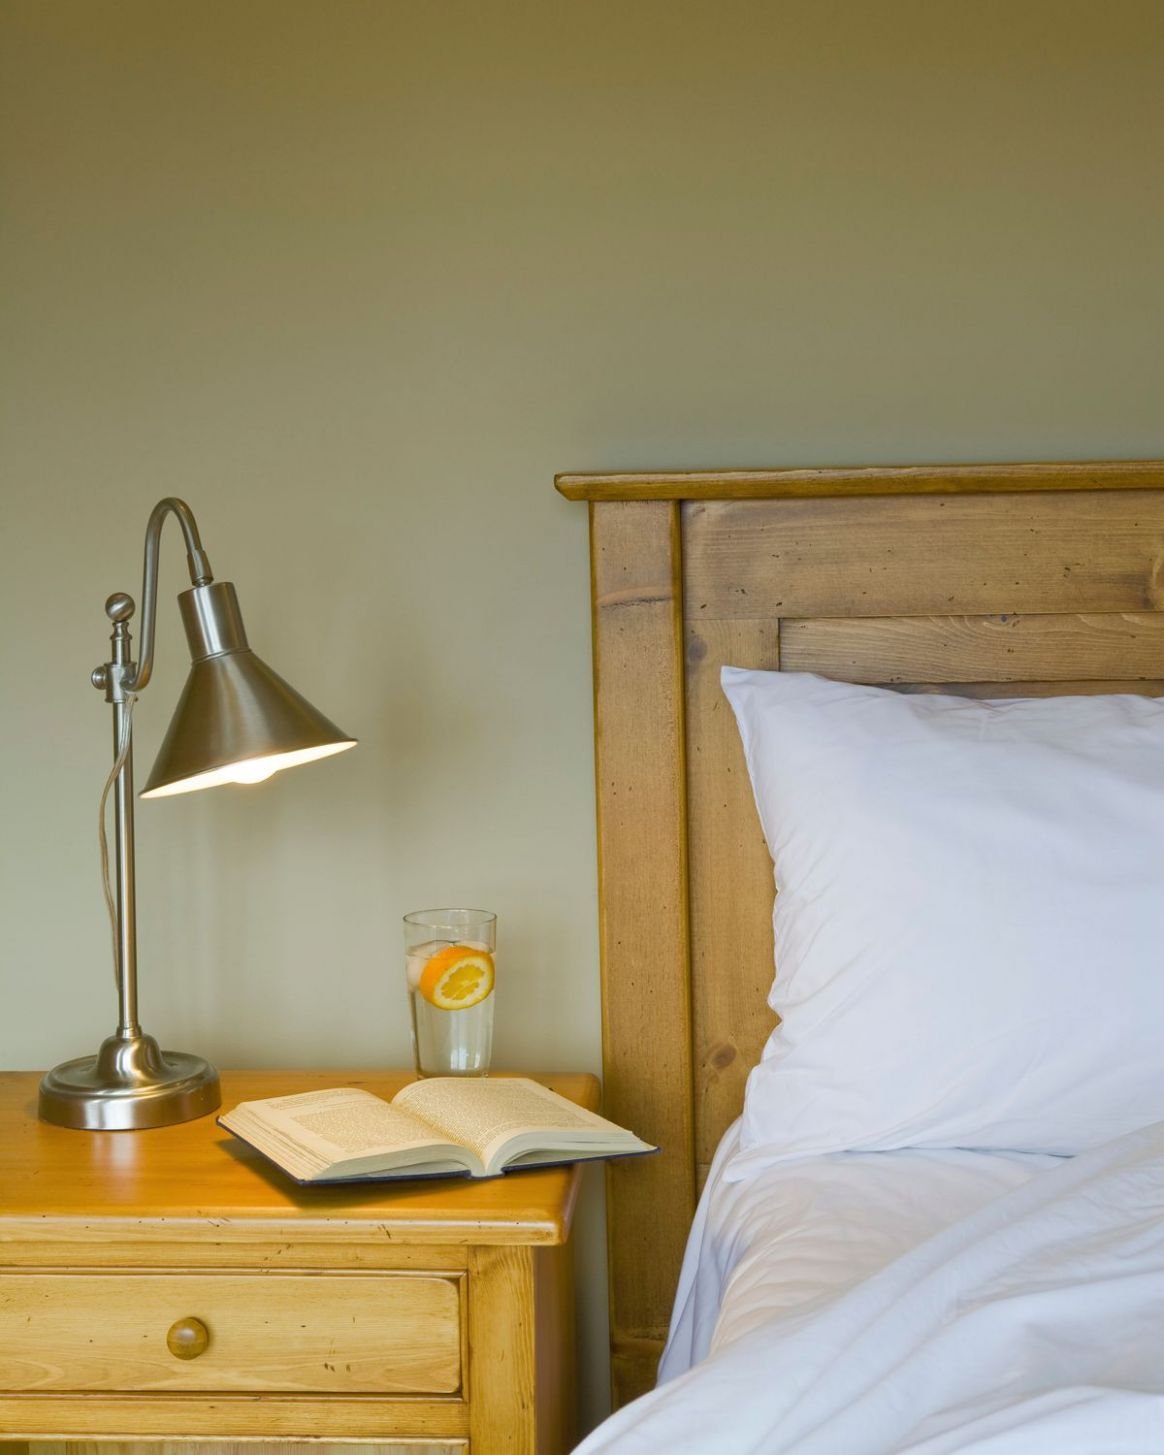 How to Provide Turndown Service for Yourself